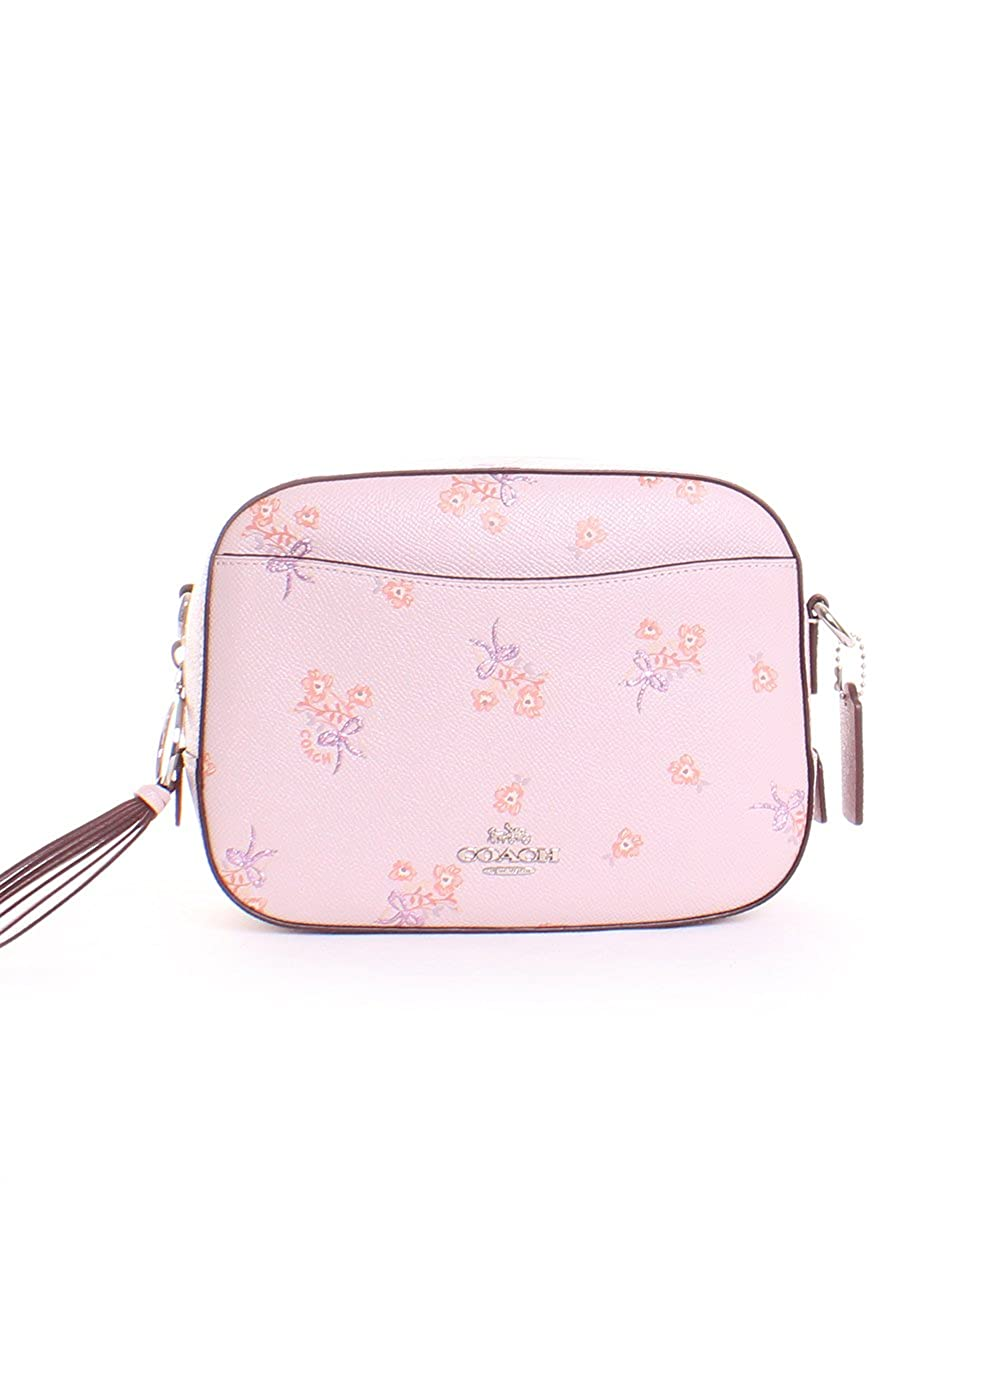 Coach Swagger 20 In Pebbled Leather Peach Camera Ice Pink Floral Bow Cross Body Bag Sv Shoes Bags